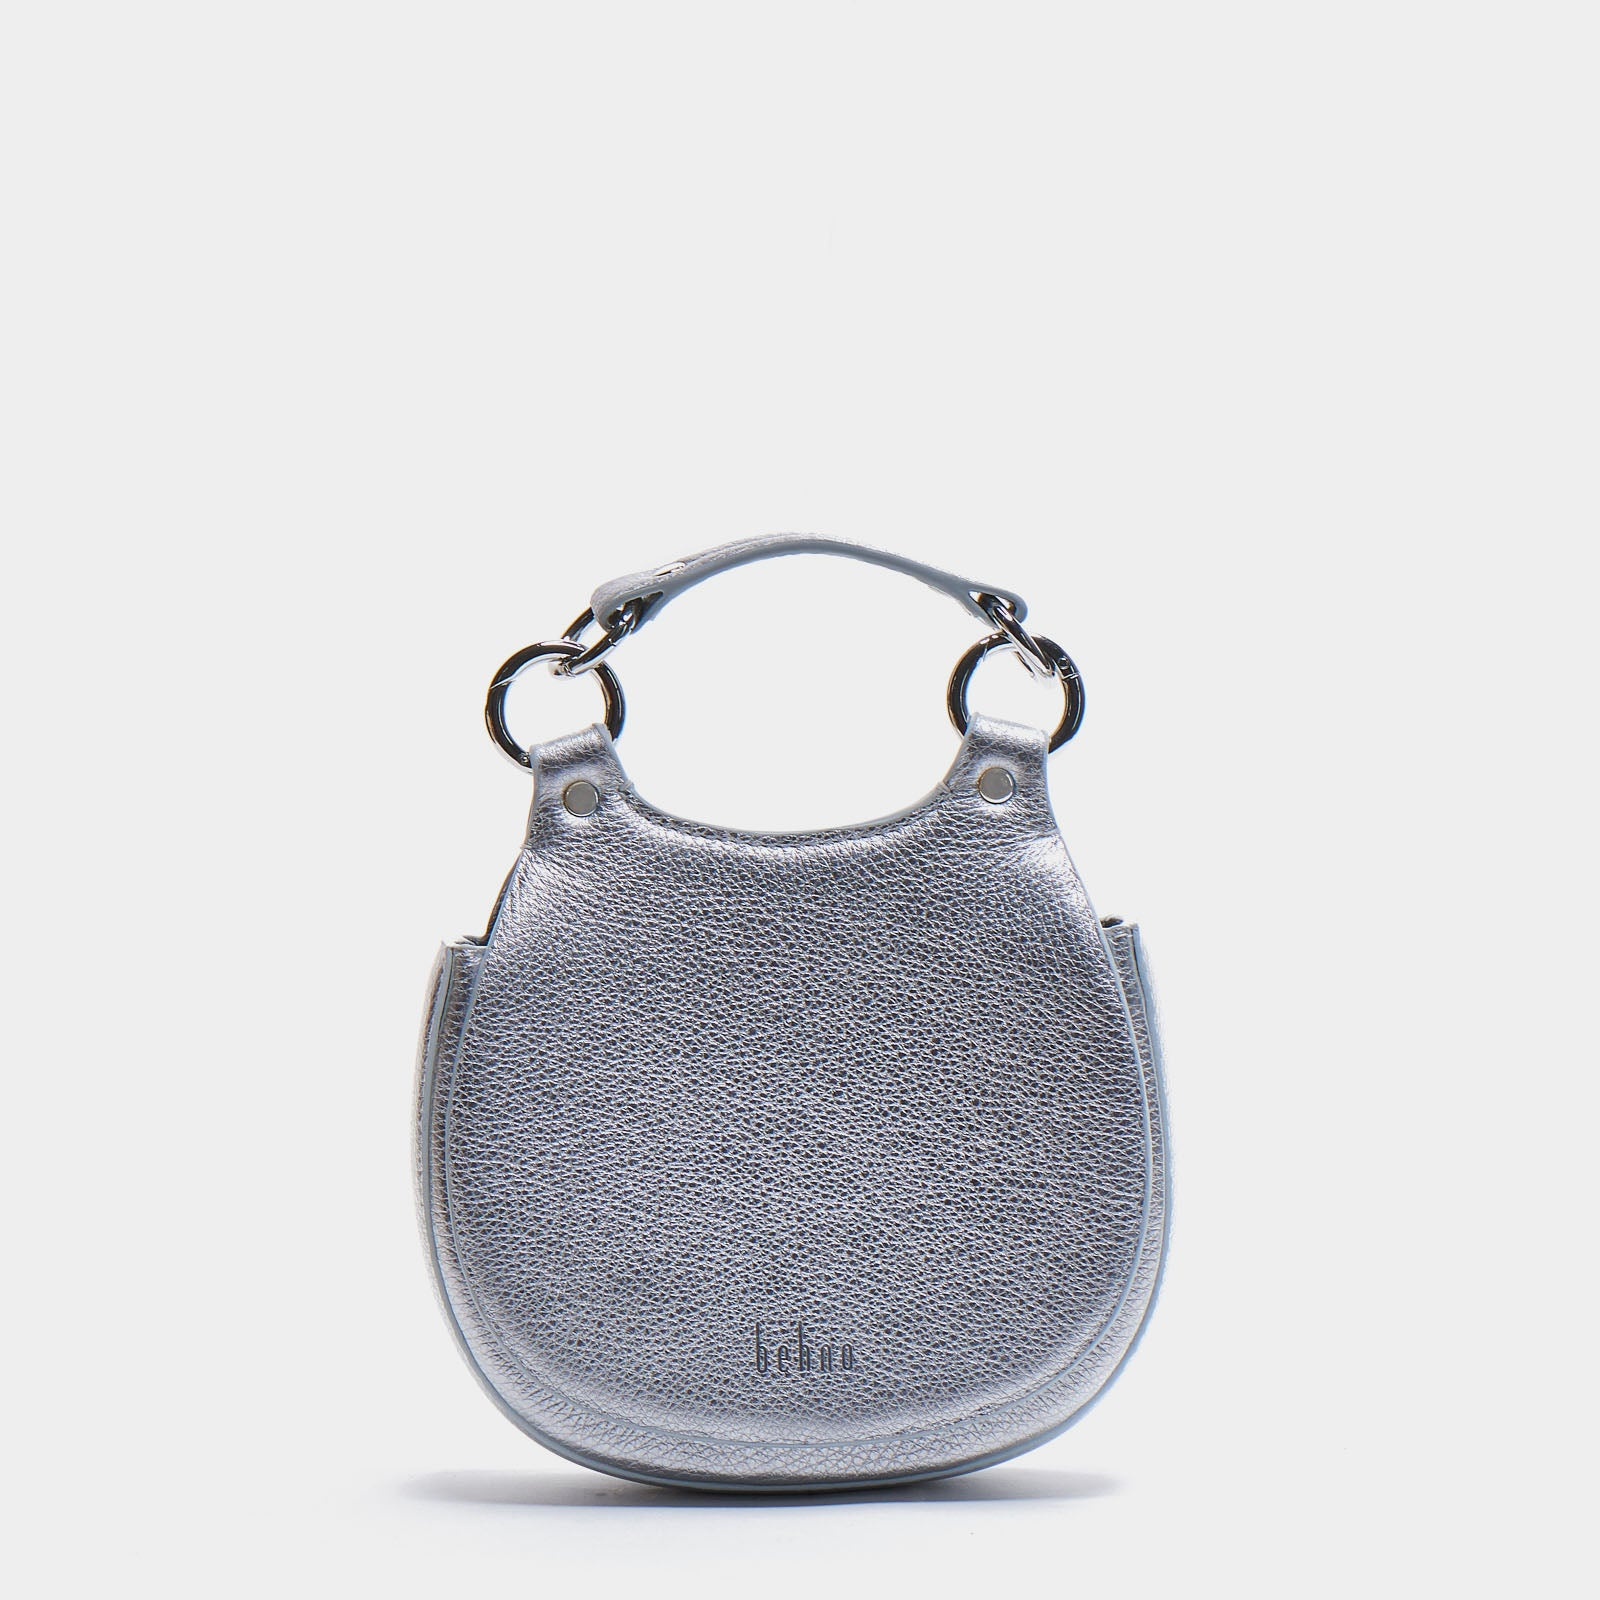 TILDA MINI SADDLE BAG METALLIC SILVER